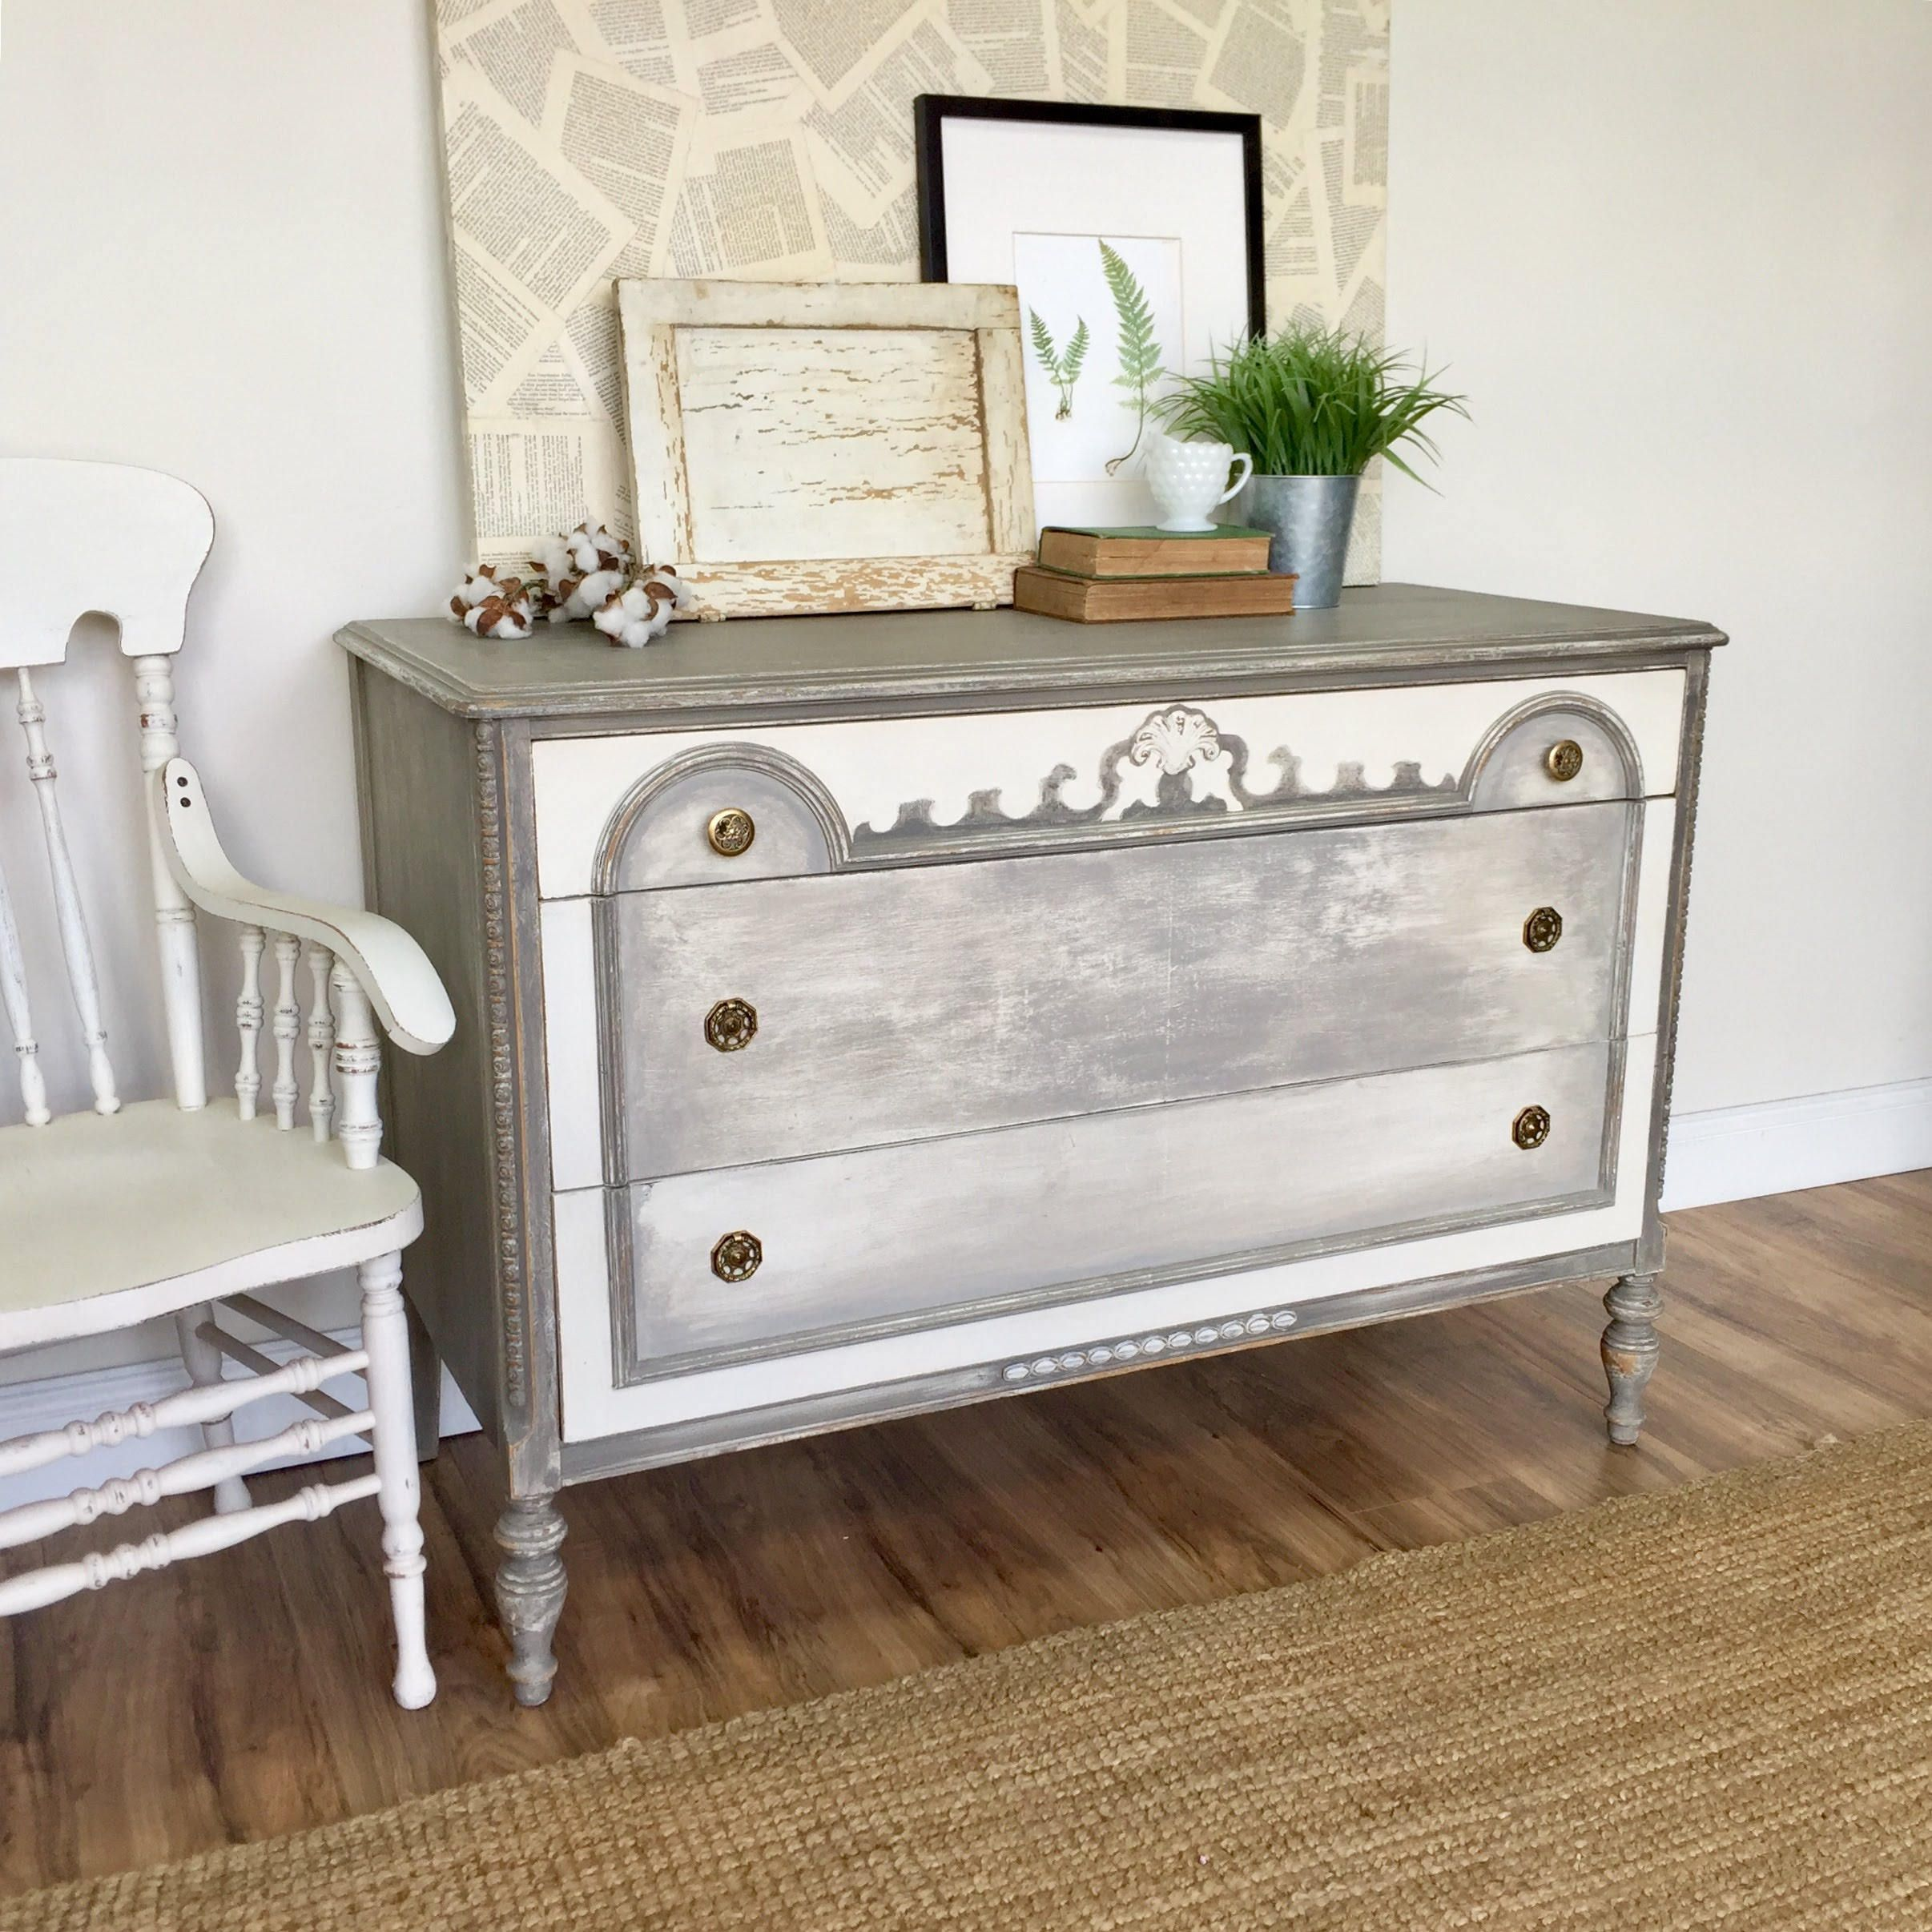 Vintage Decor And Distressed Furniture In Sparta Township Nj Vintage Hip Decor Shabby Chic Dresser Shabby Chic Furniture Farmhouse Furniture [ 2412 x 2412 Pixel ]